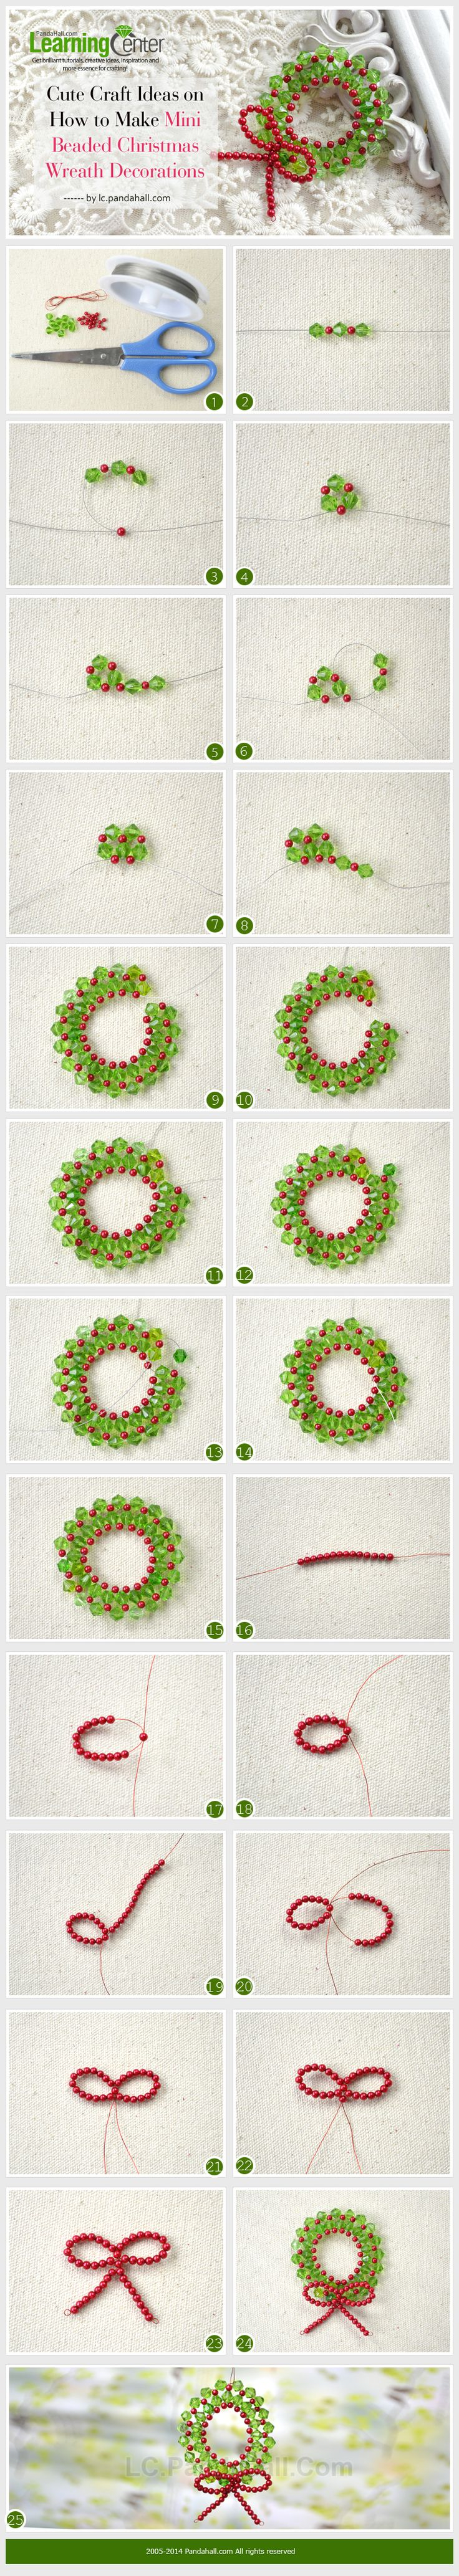 Cute Craft Ideas on How to Make Mini Beaded Christmas Wreath Decorations